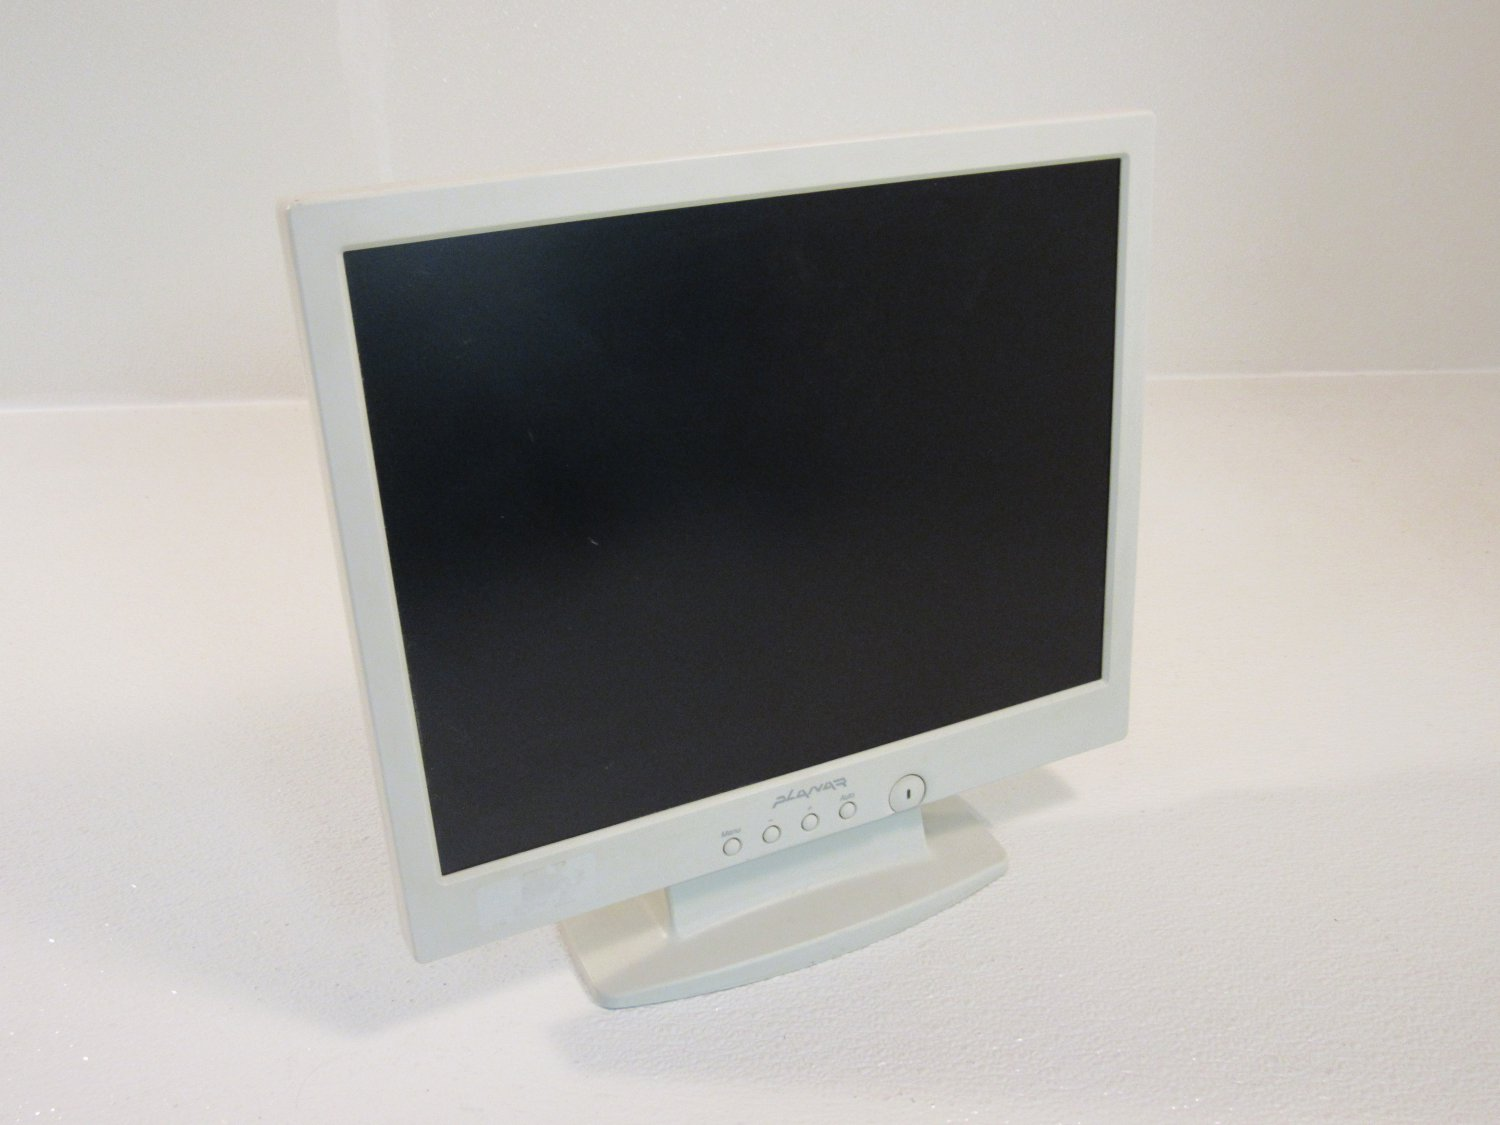 Planar 15in Color Flat Screen Monitor LCD White 12V DC 2.1A PL150